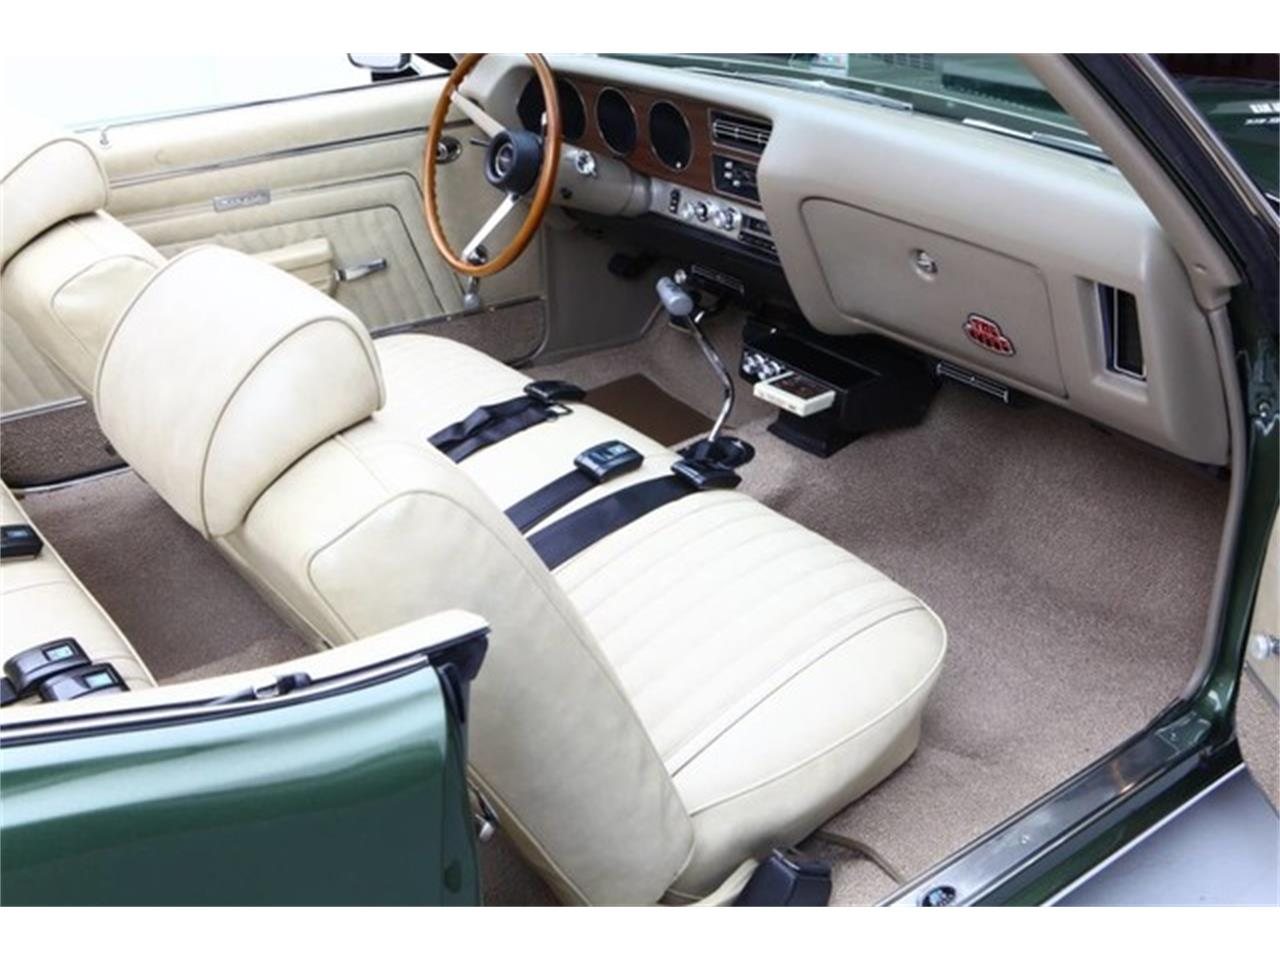 Large Picture of Classic '70 GTO (The Judge) - $219,000.00 Offered by Prestige Motor Car Co. - PU25